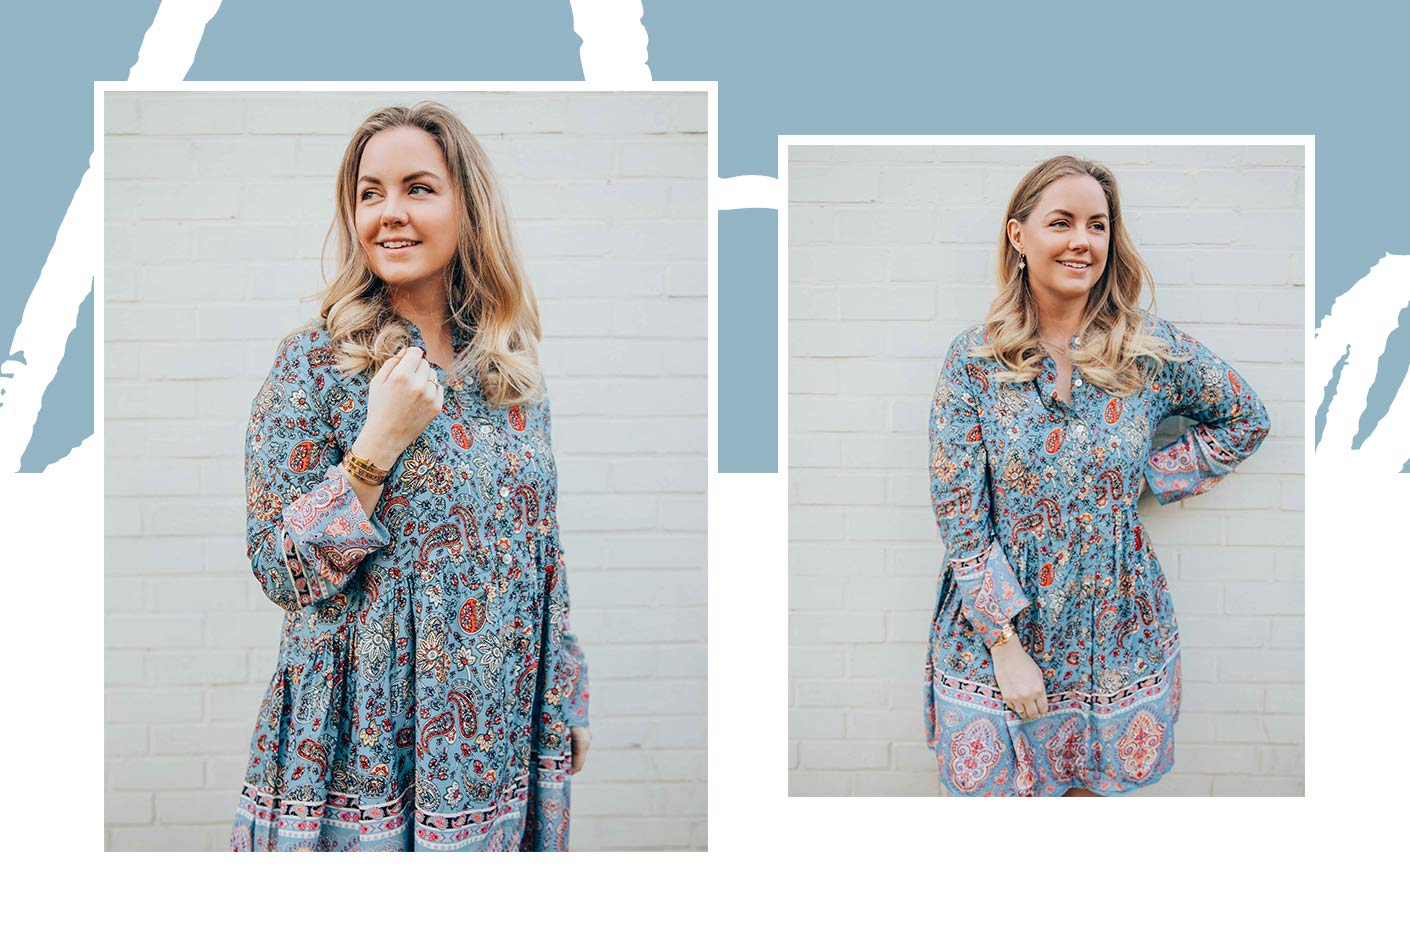 The smiling Axelle wearing a baby-doll dress with colourful print.